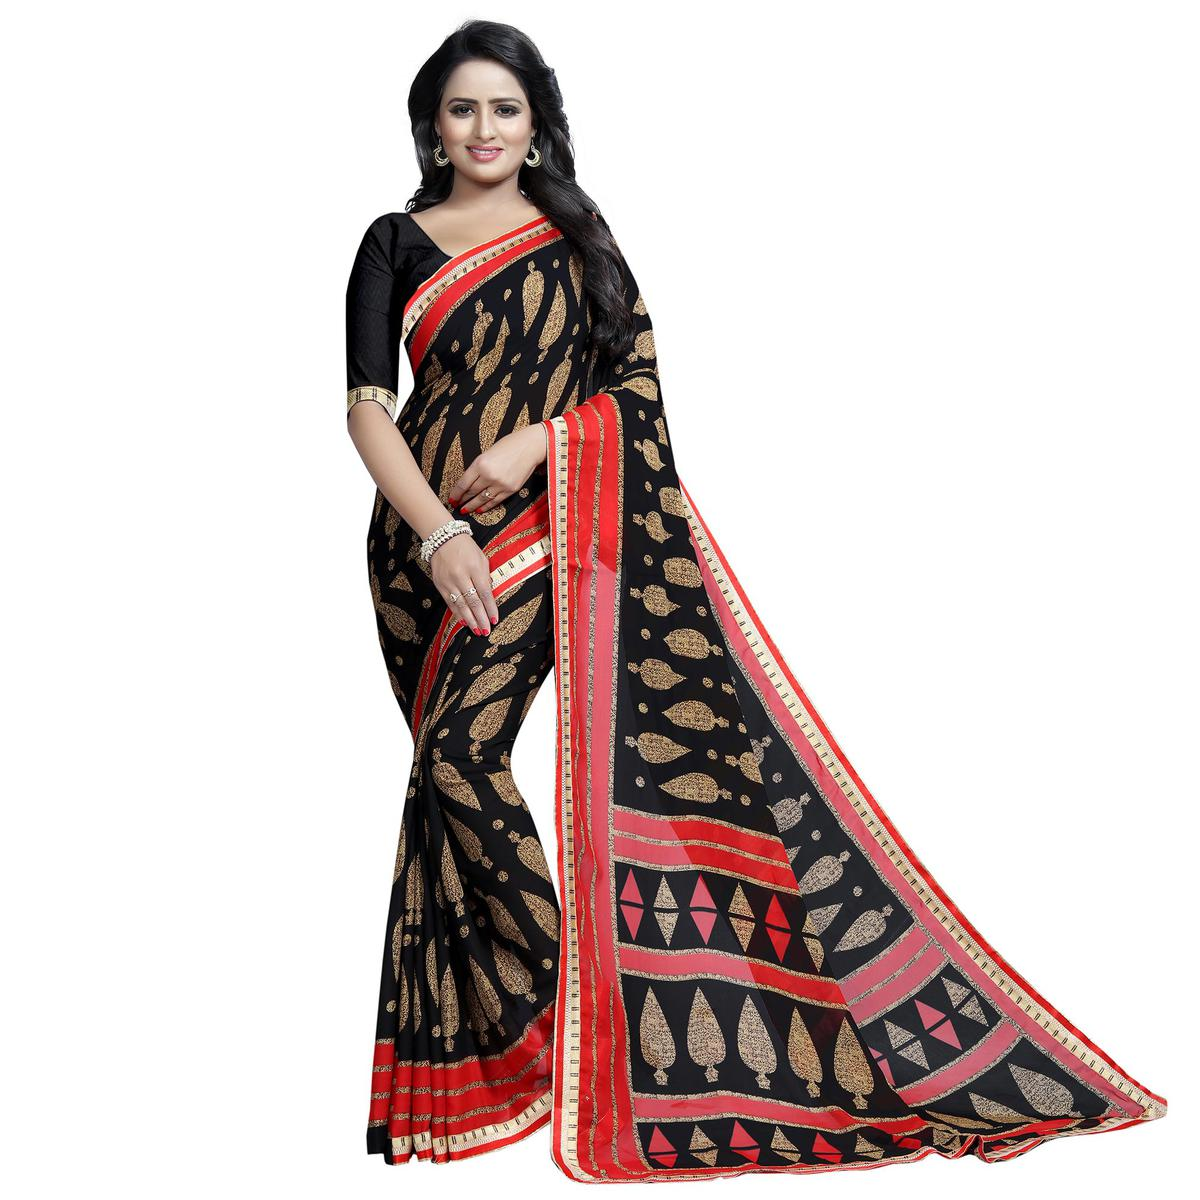 Alluring Black Colored Casual Wear Printed Georgette Saree